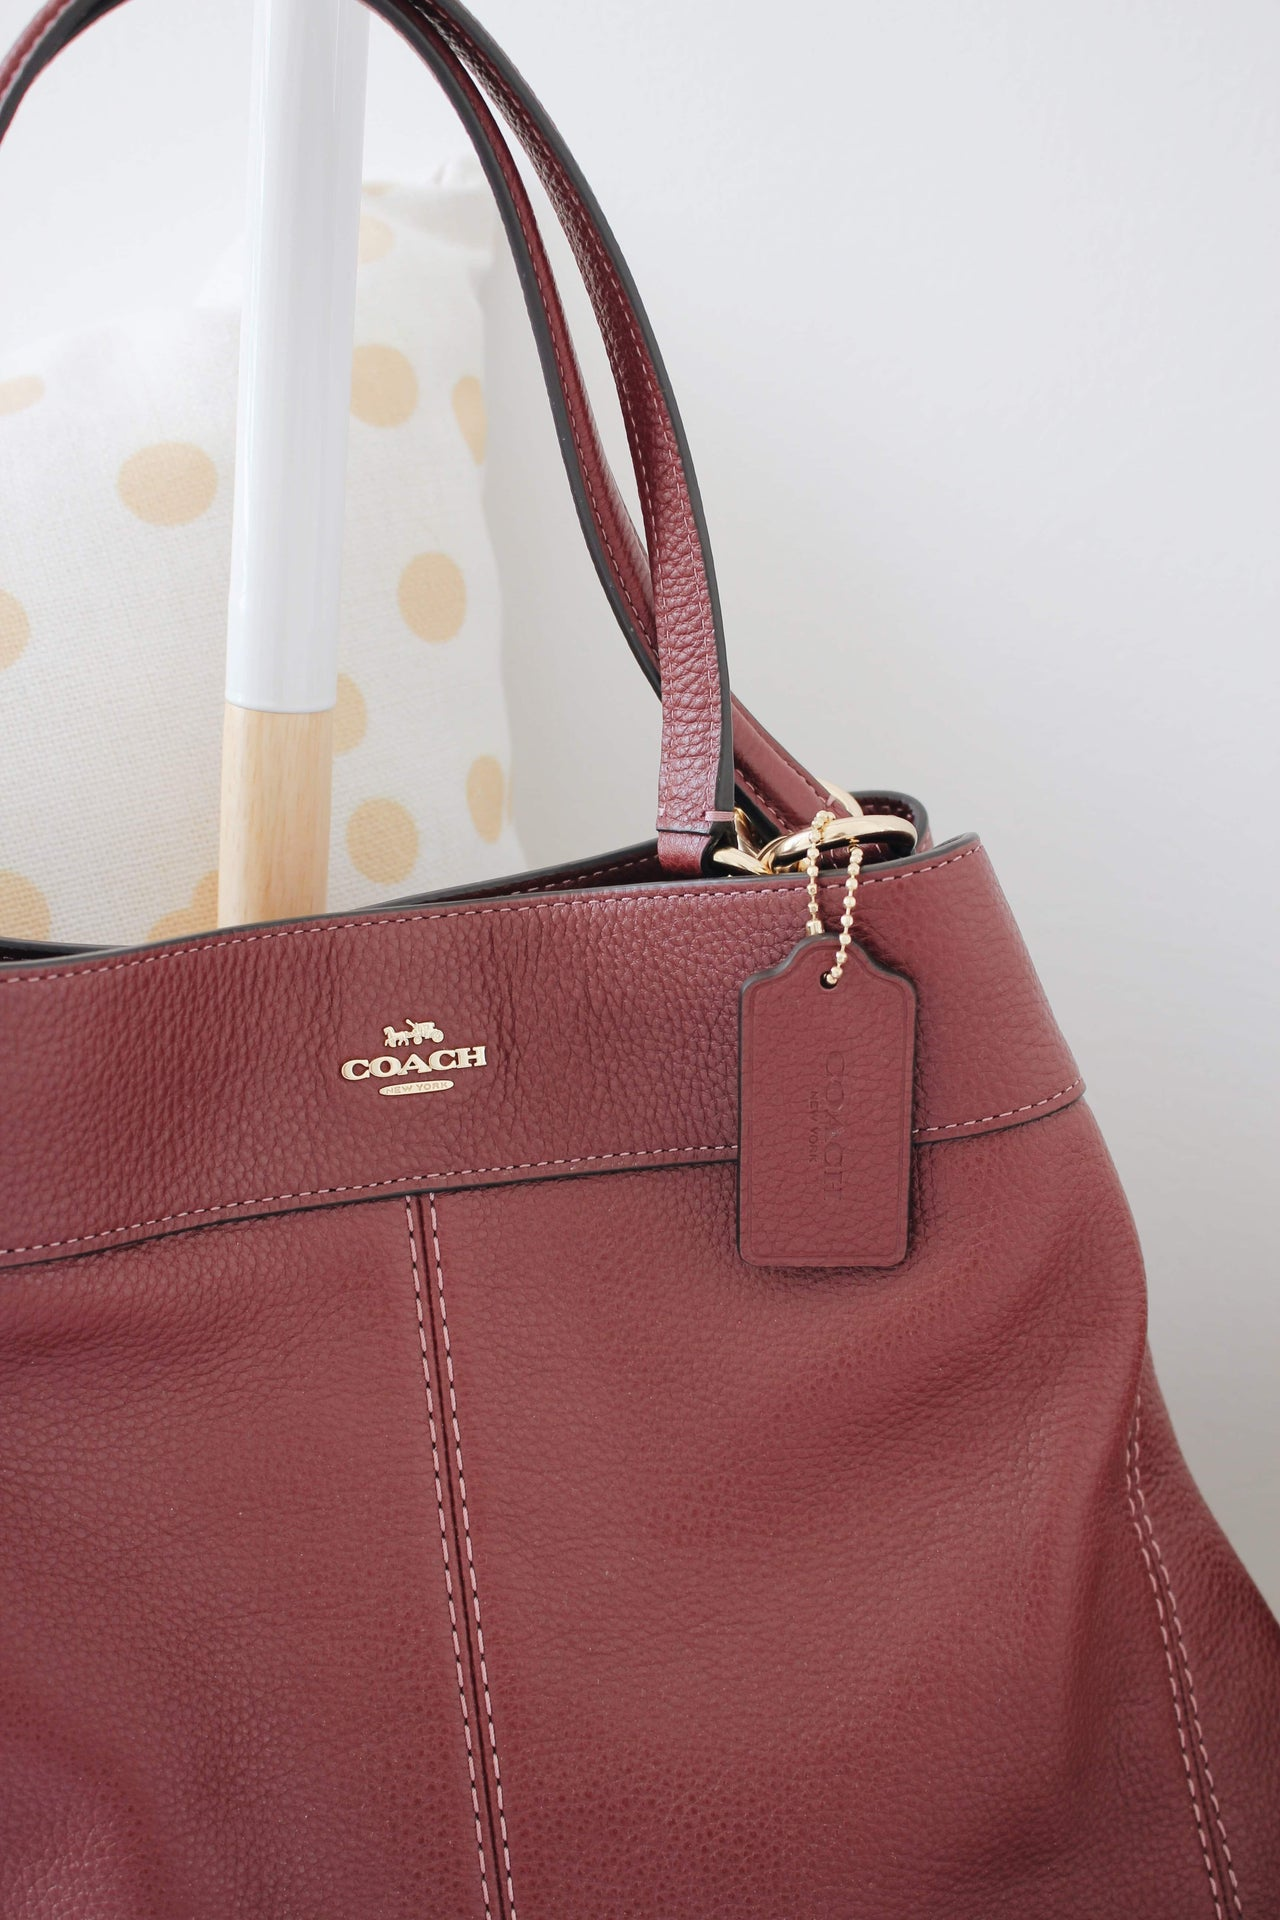 COACH PEBBLED LEATHER LEXY SHOULDER BAG - LovelyMadness Clothing Malaysia